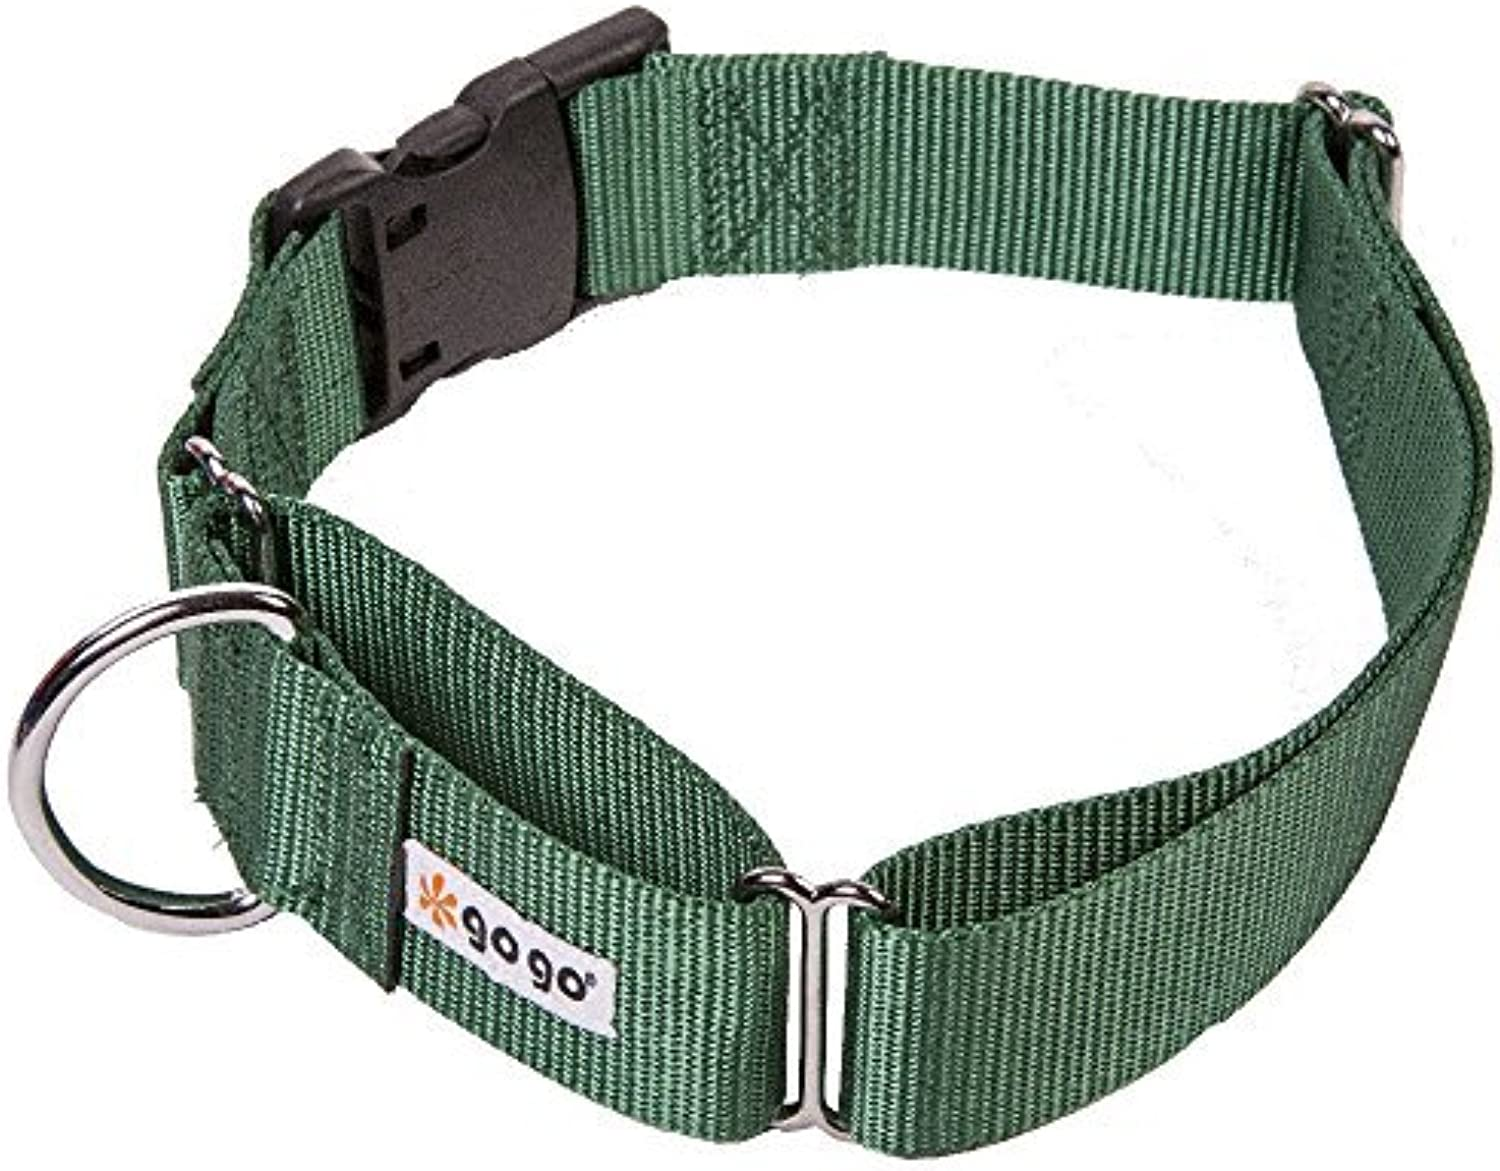 GoGo Pet Products Martingale Gentle Training Collar, XLarge, Hunter Green by GoGo Pet Products